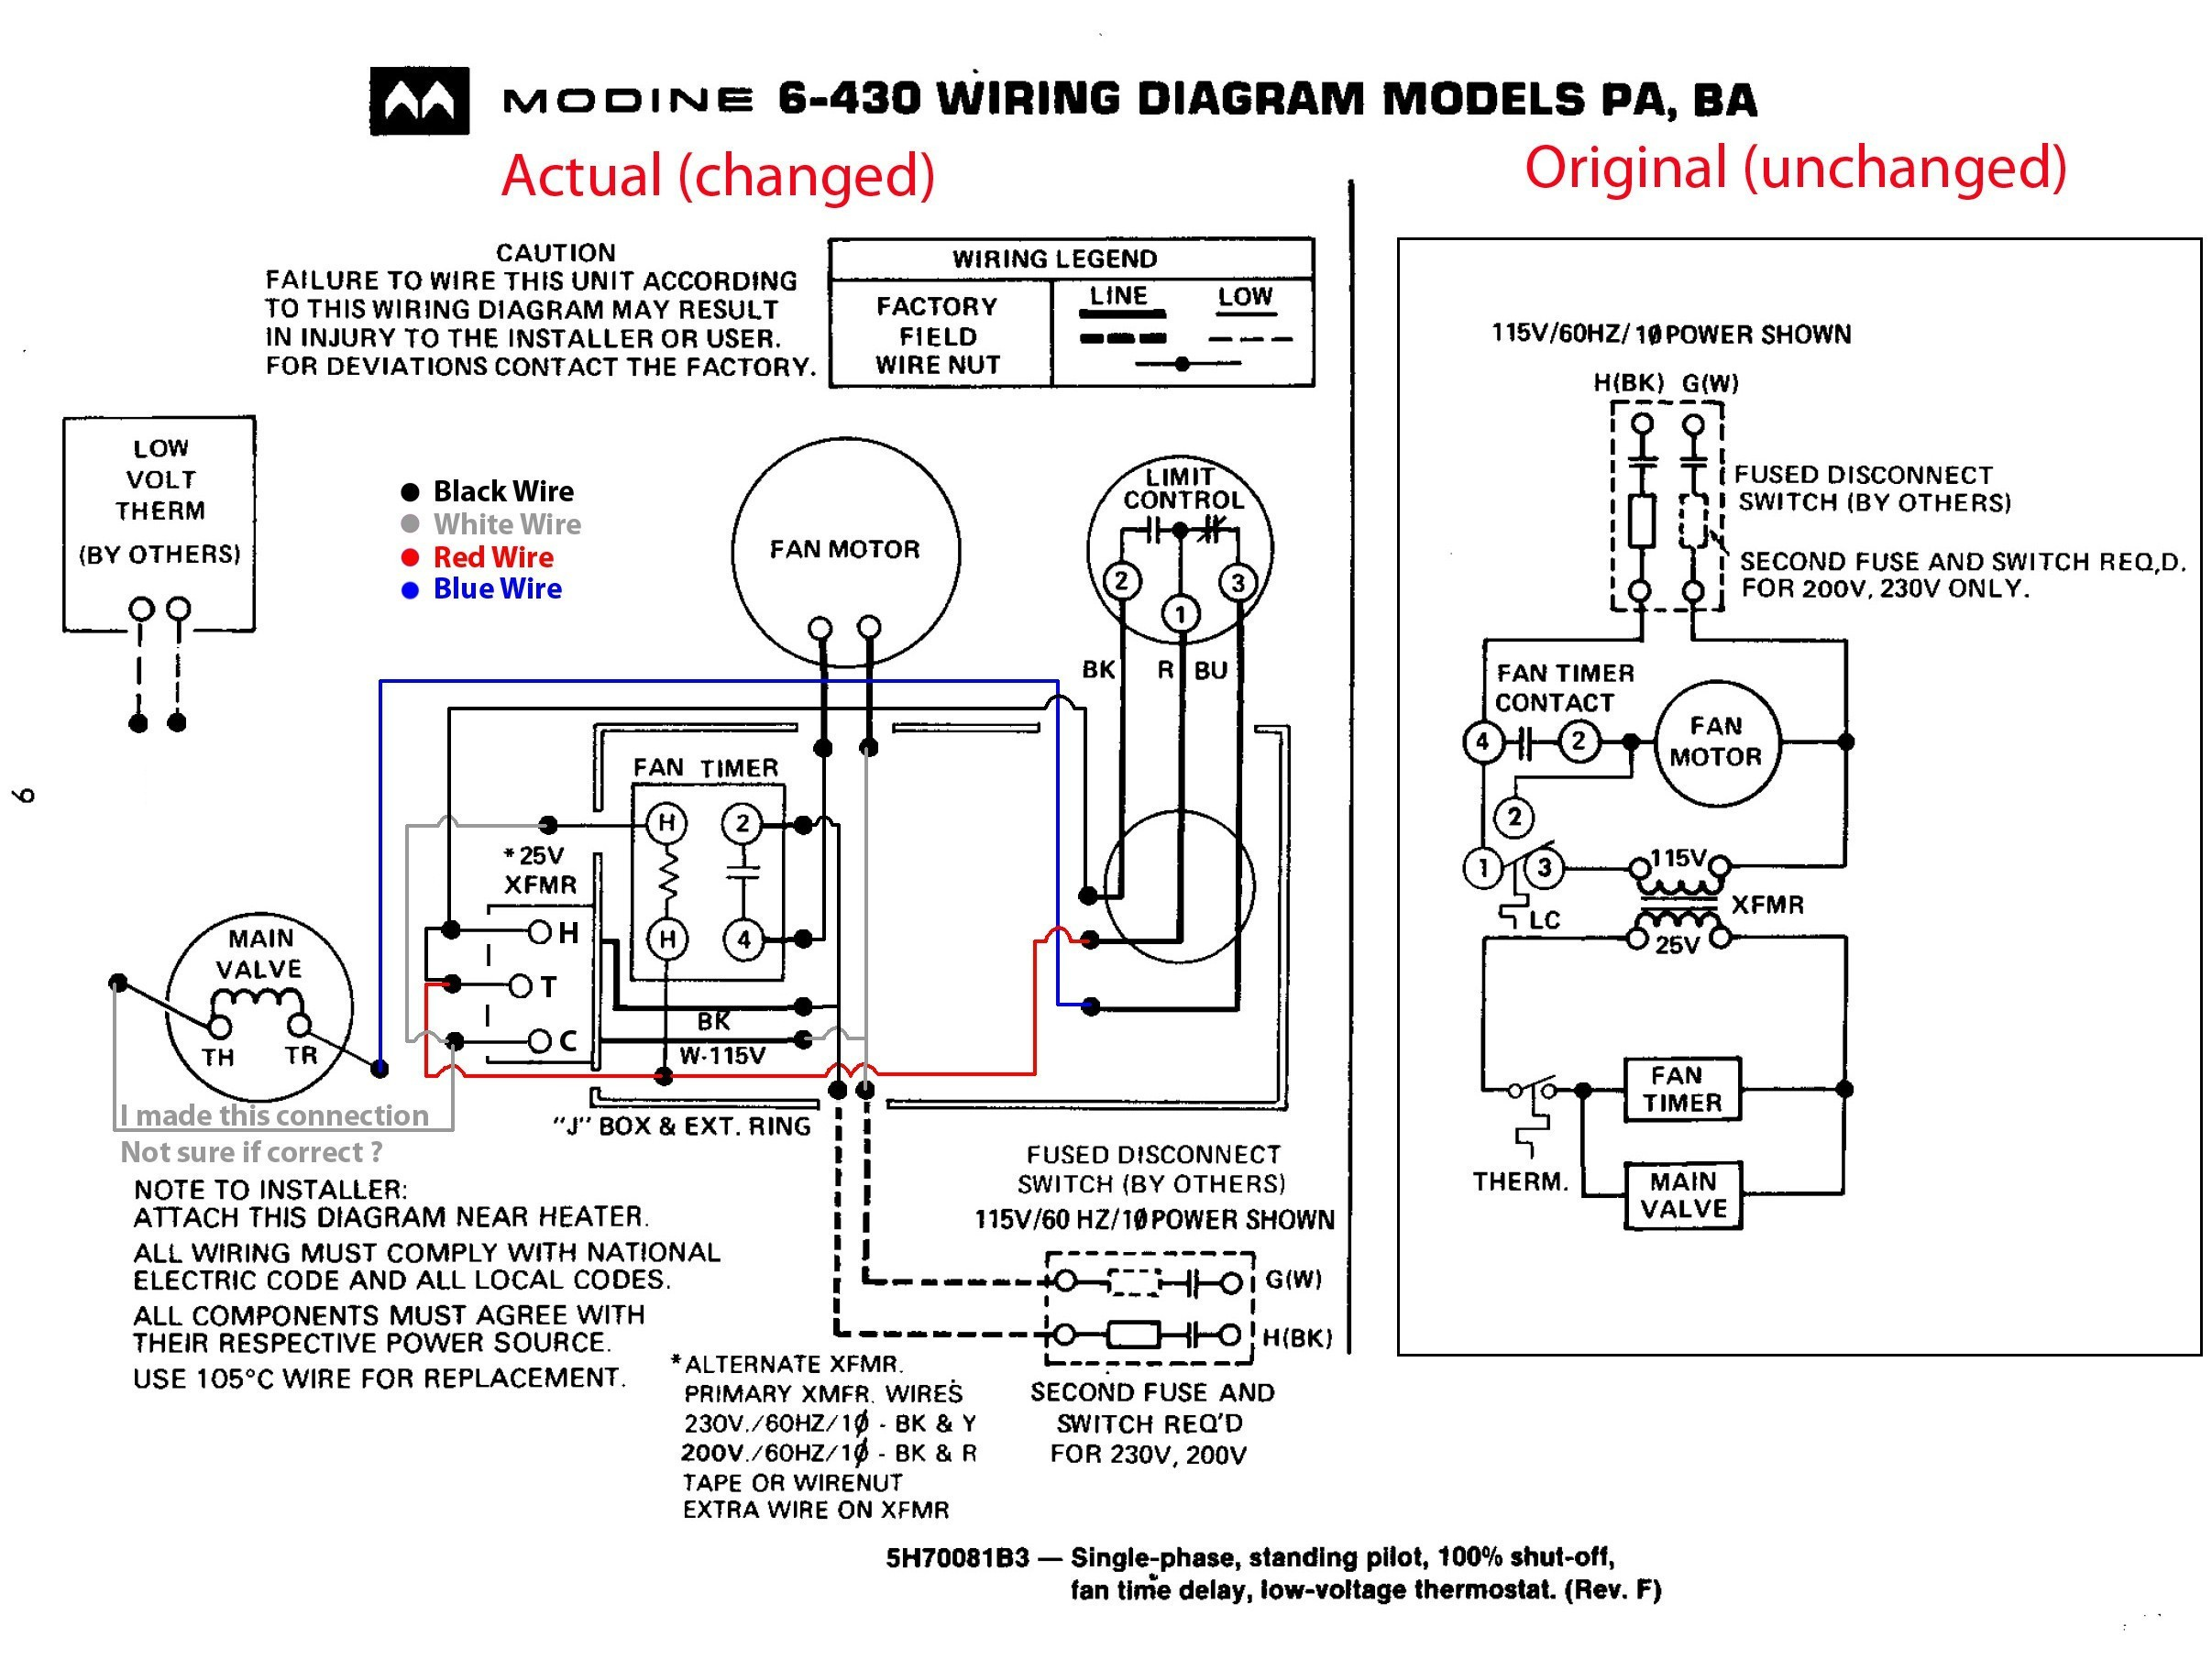 Rotary Motor Diagram Wiring Diagram Games Inspirationa Got A Wiring Diagram From Http Of Rotary Motor Diagram